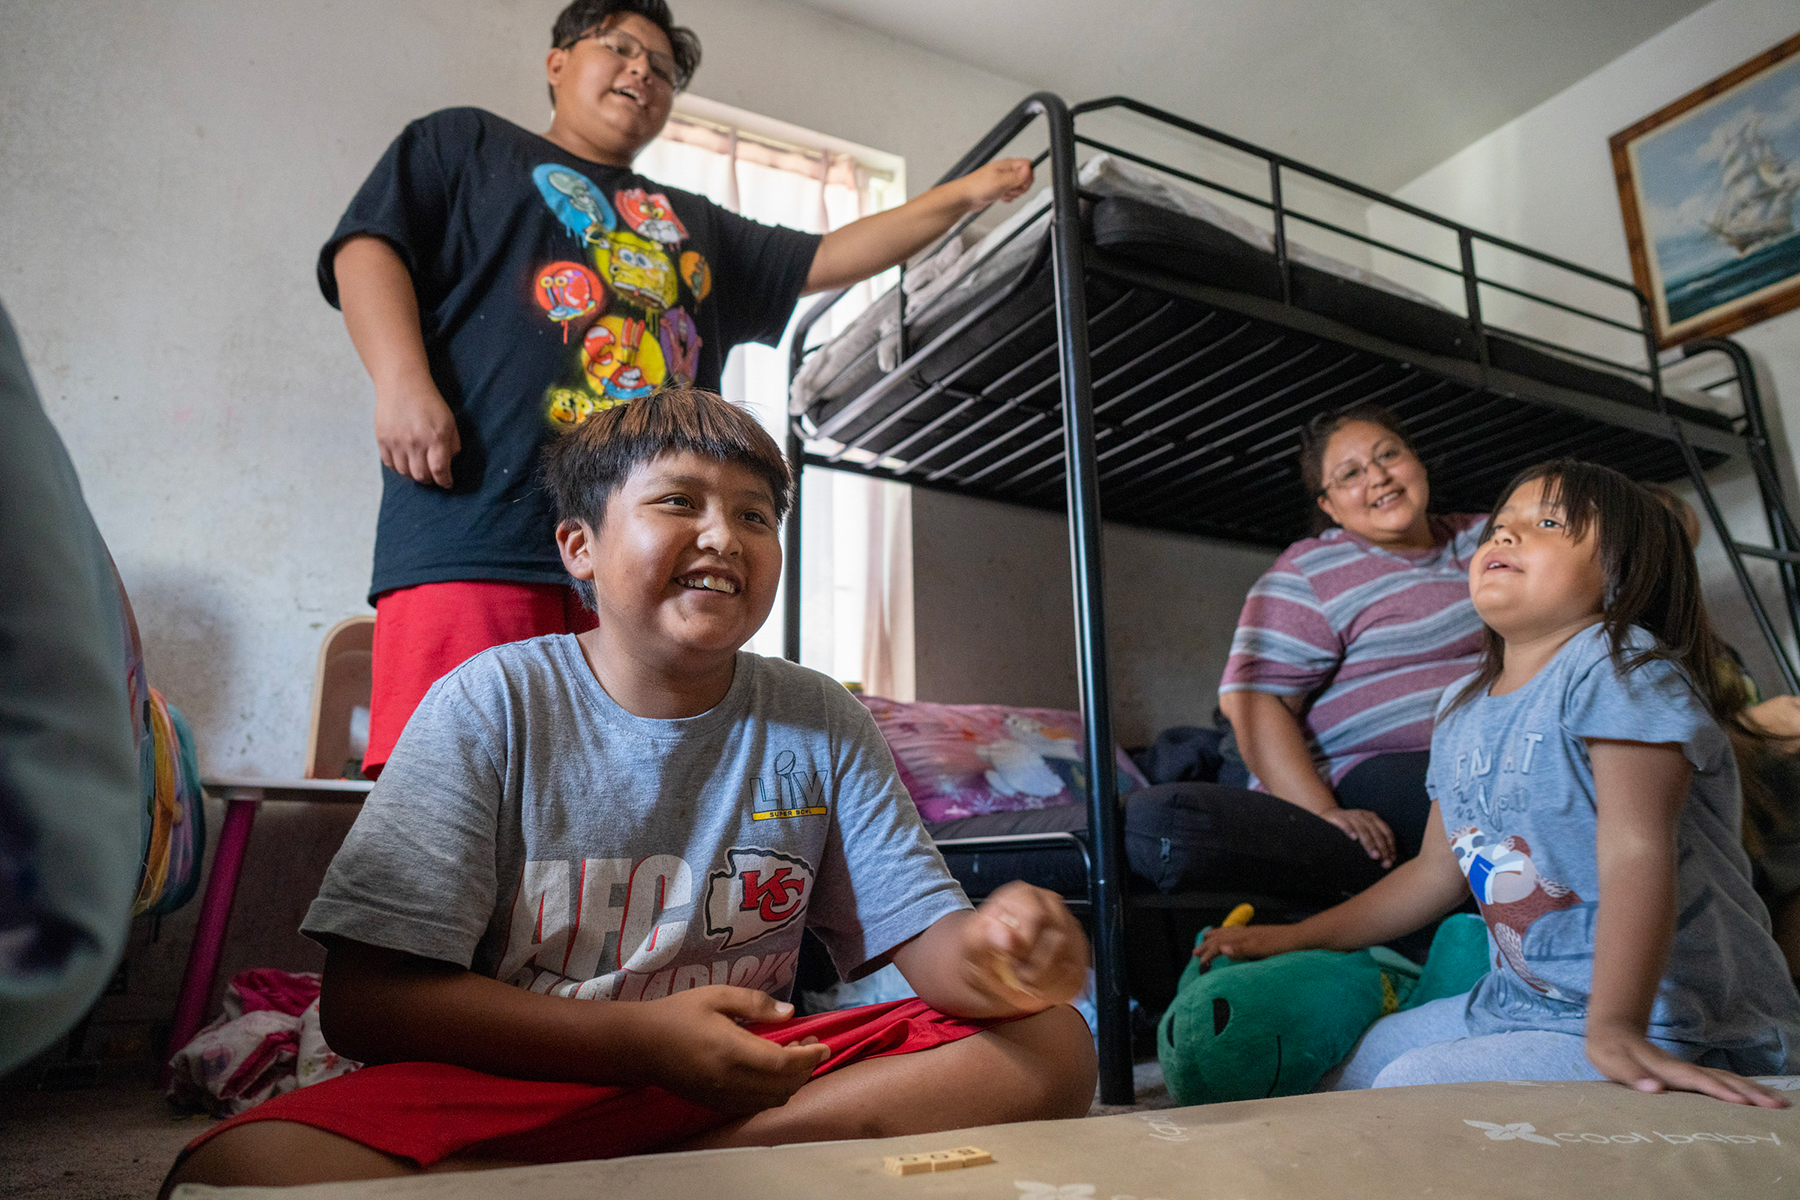 Carter Mariano plays word games with his family in a bedroom of their Shiprock home.